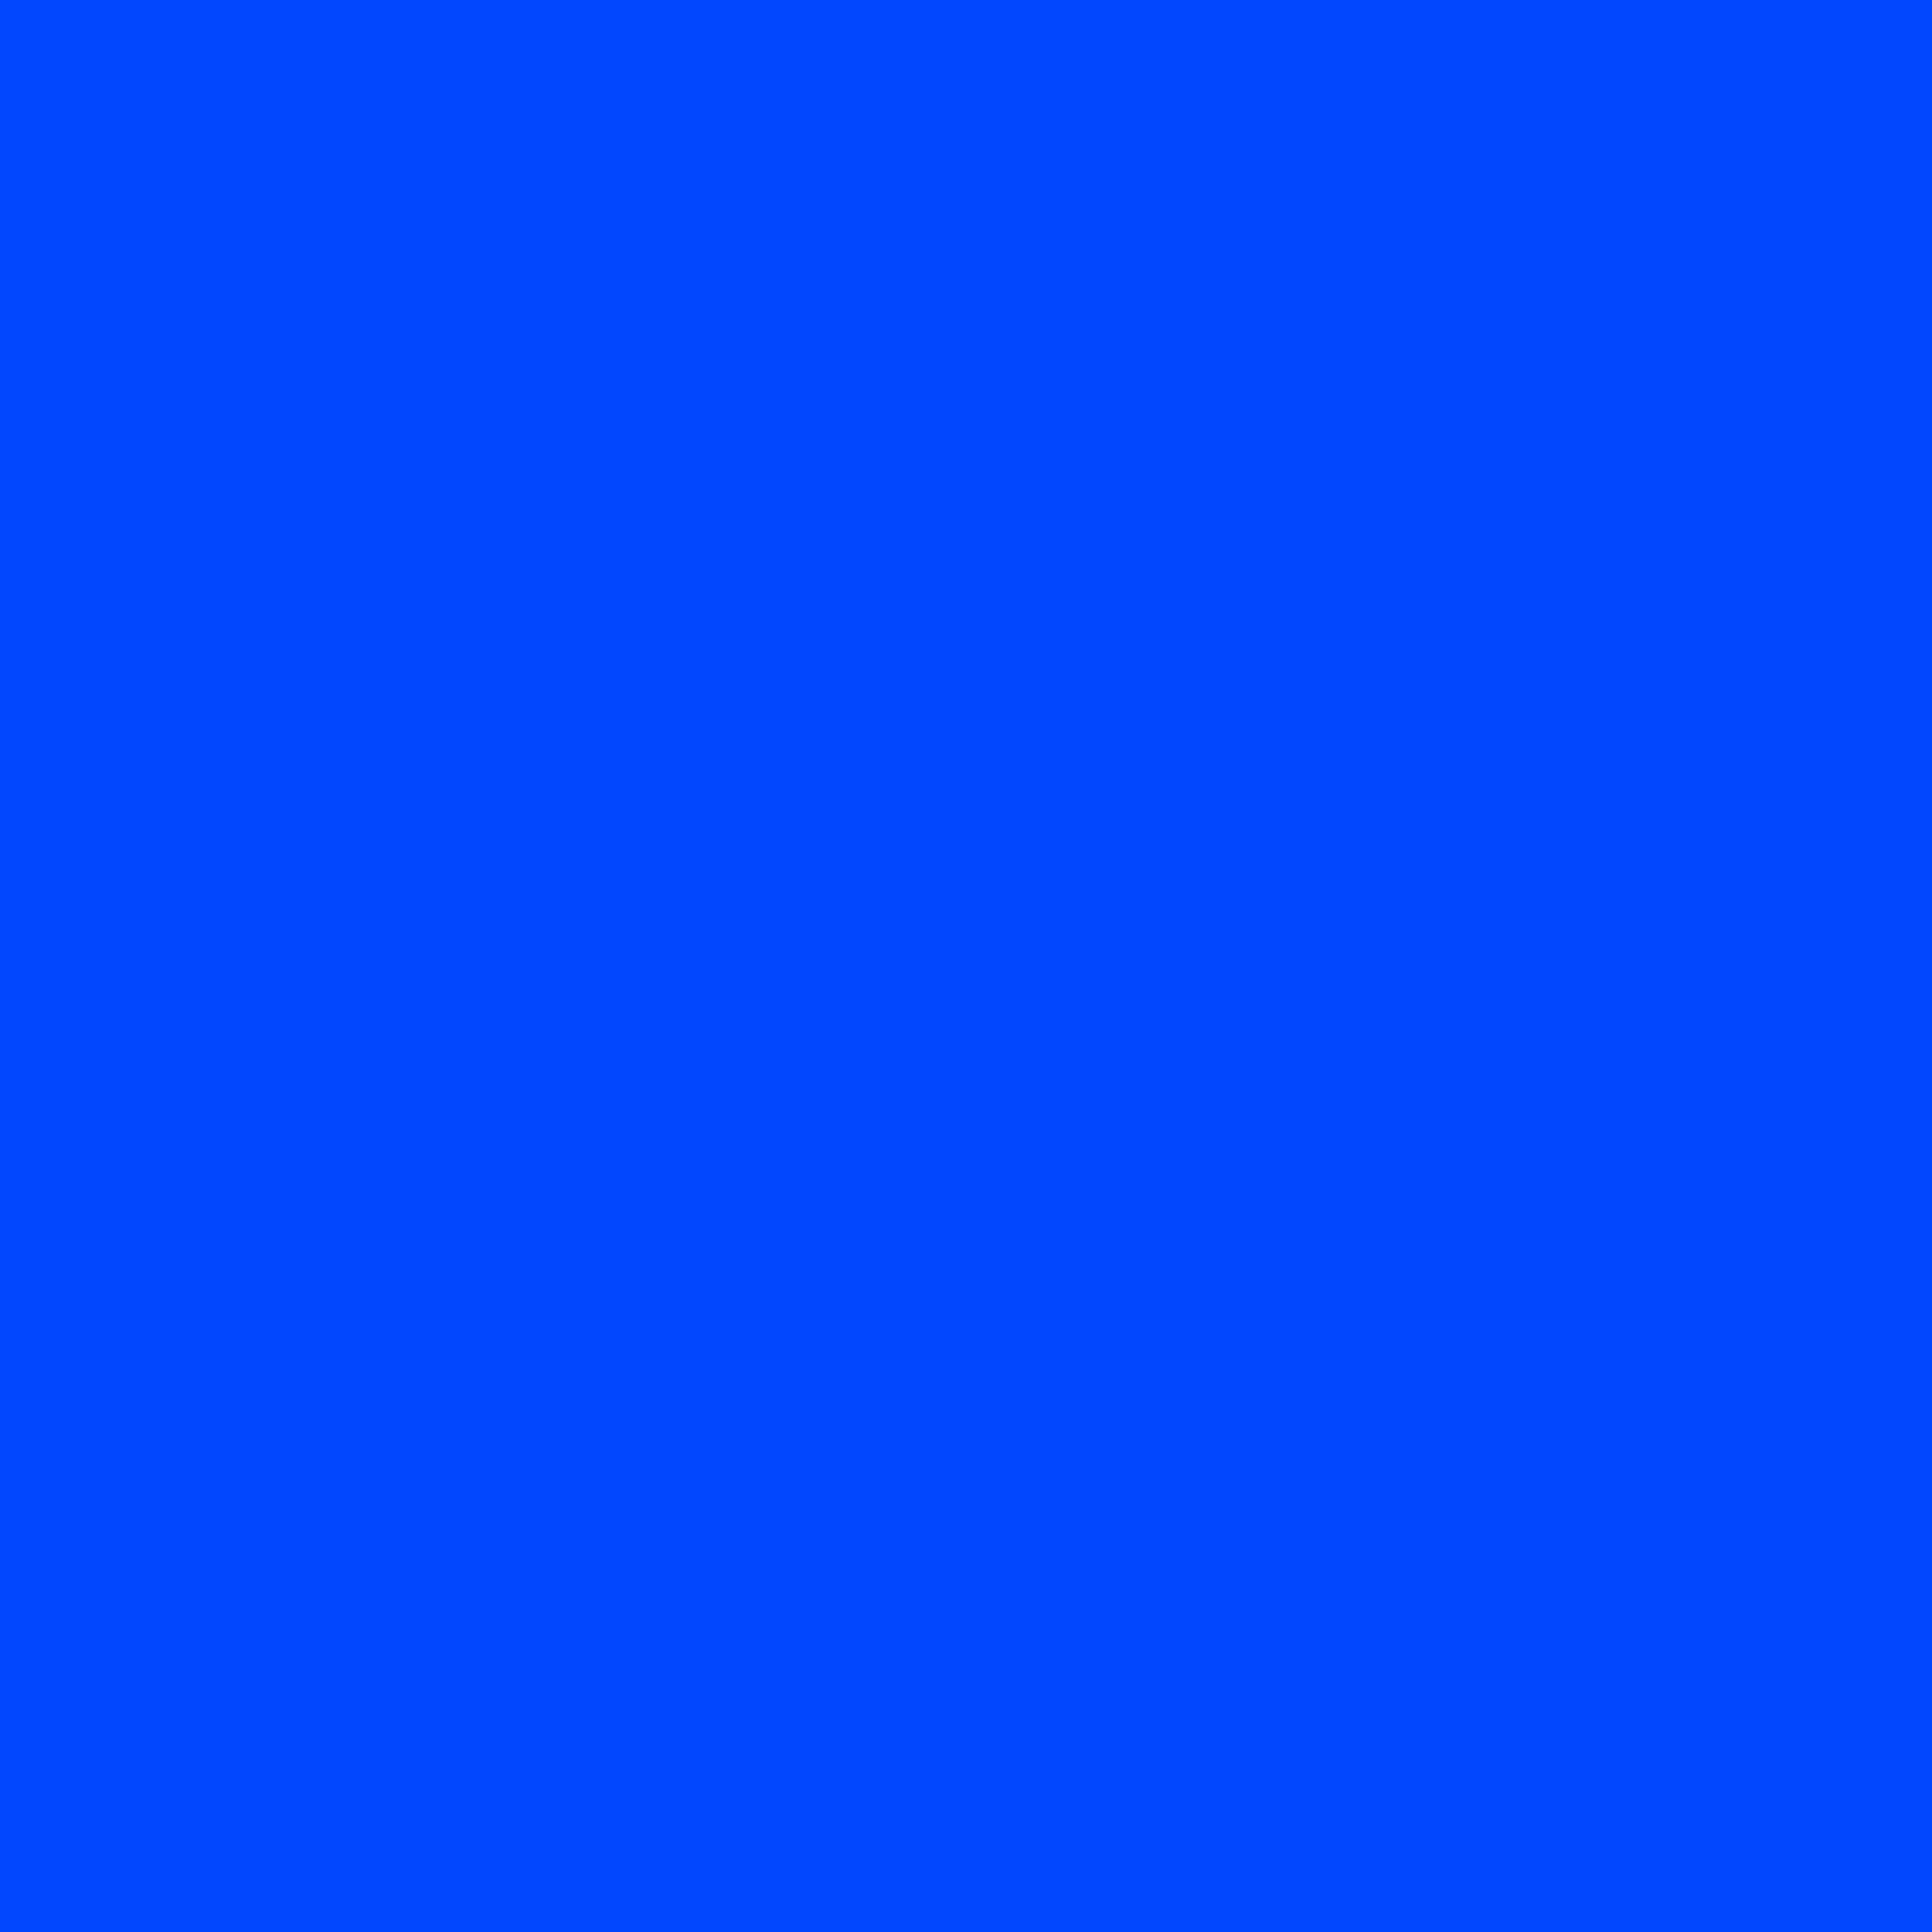 2048x2048 Blue RYB Solid Color Background